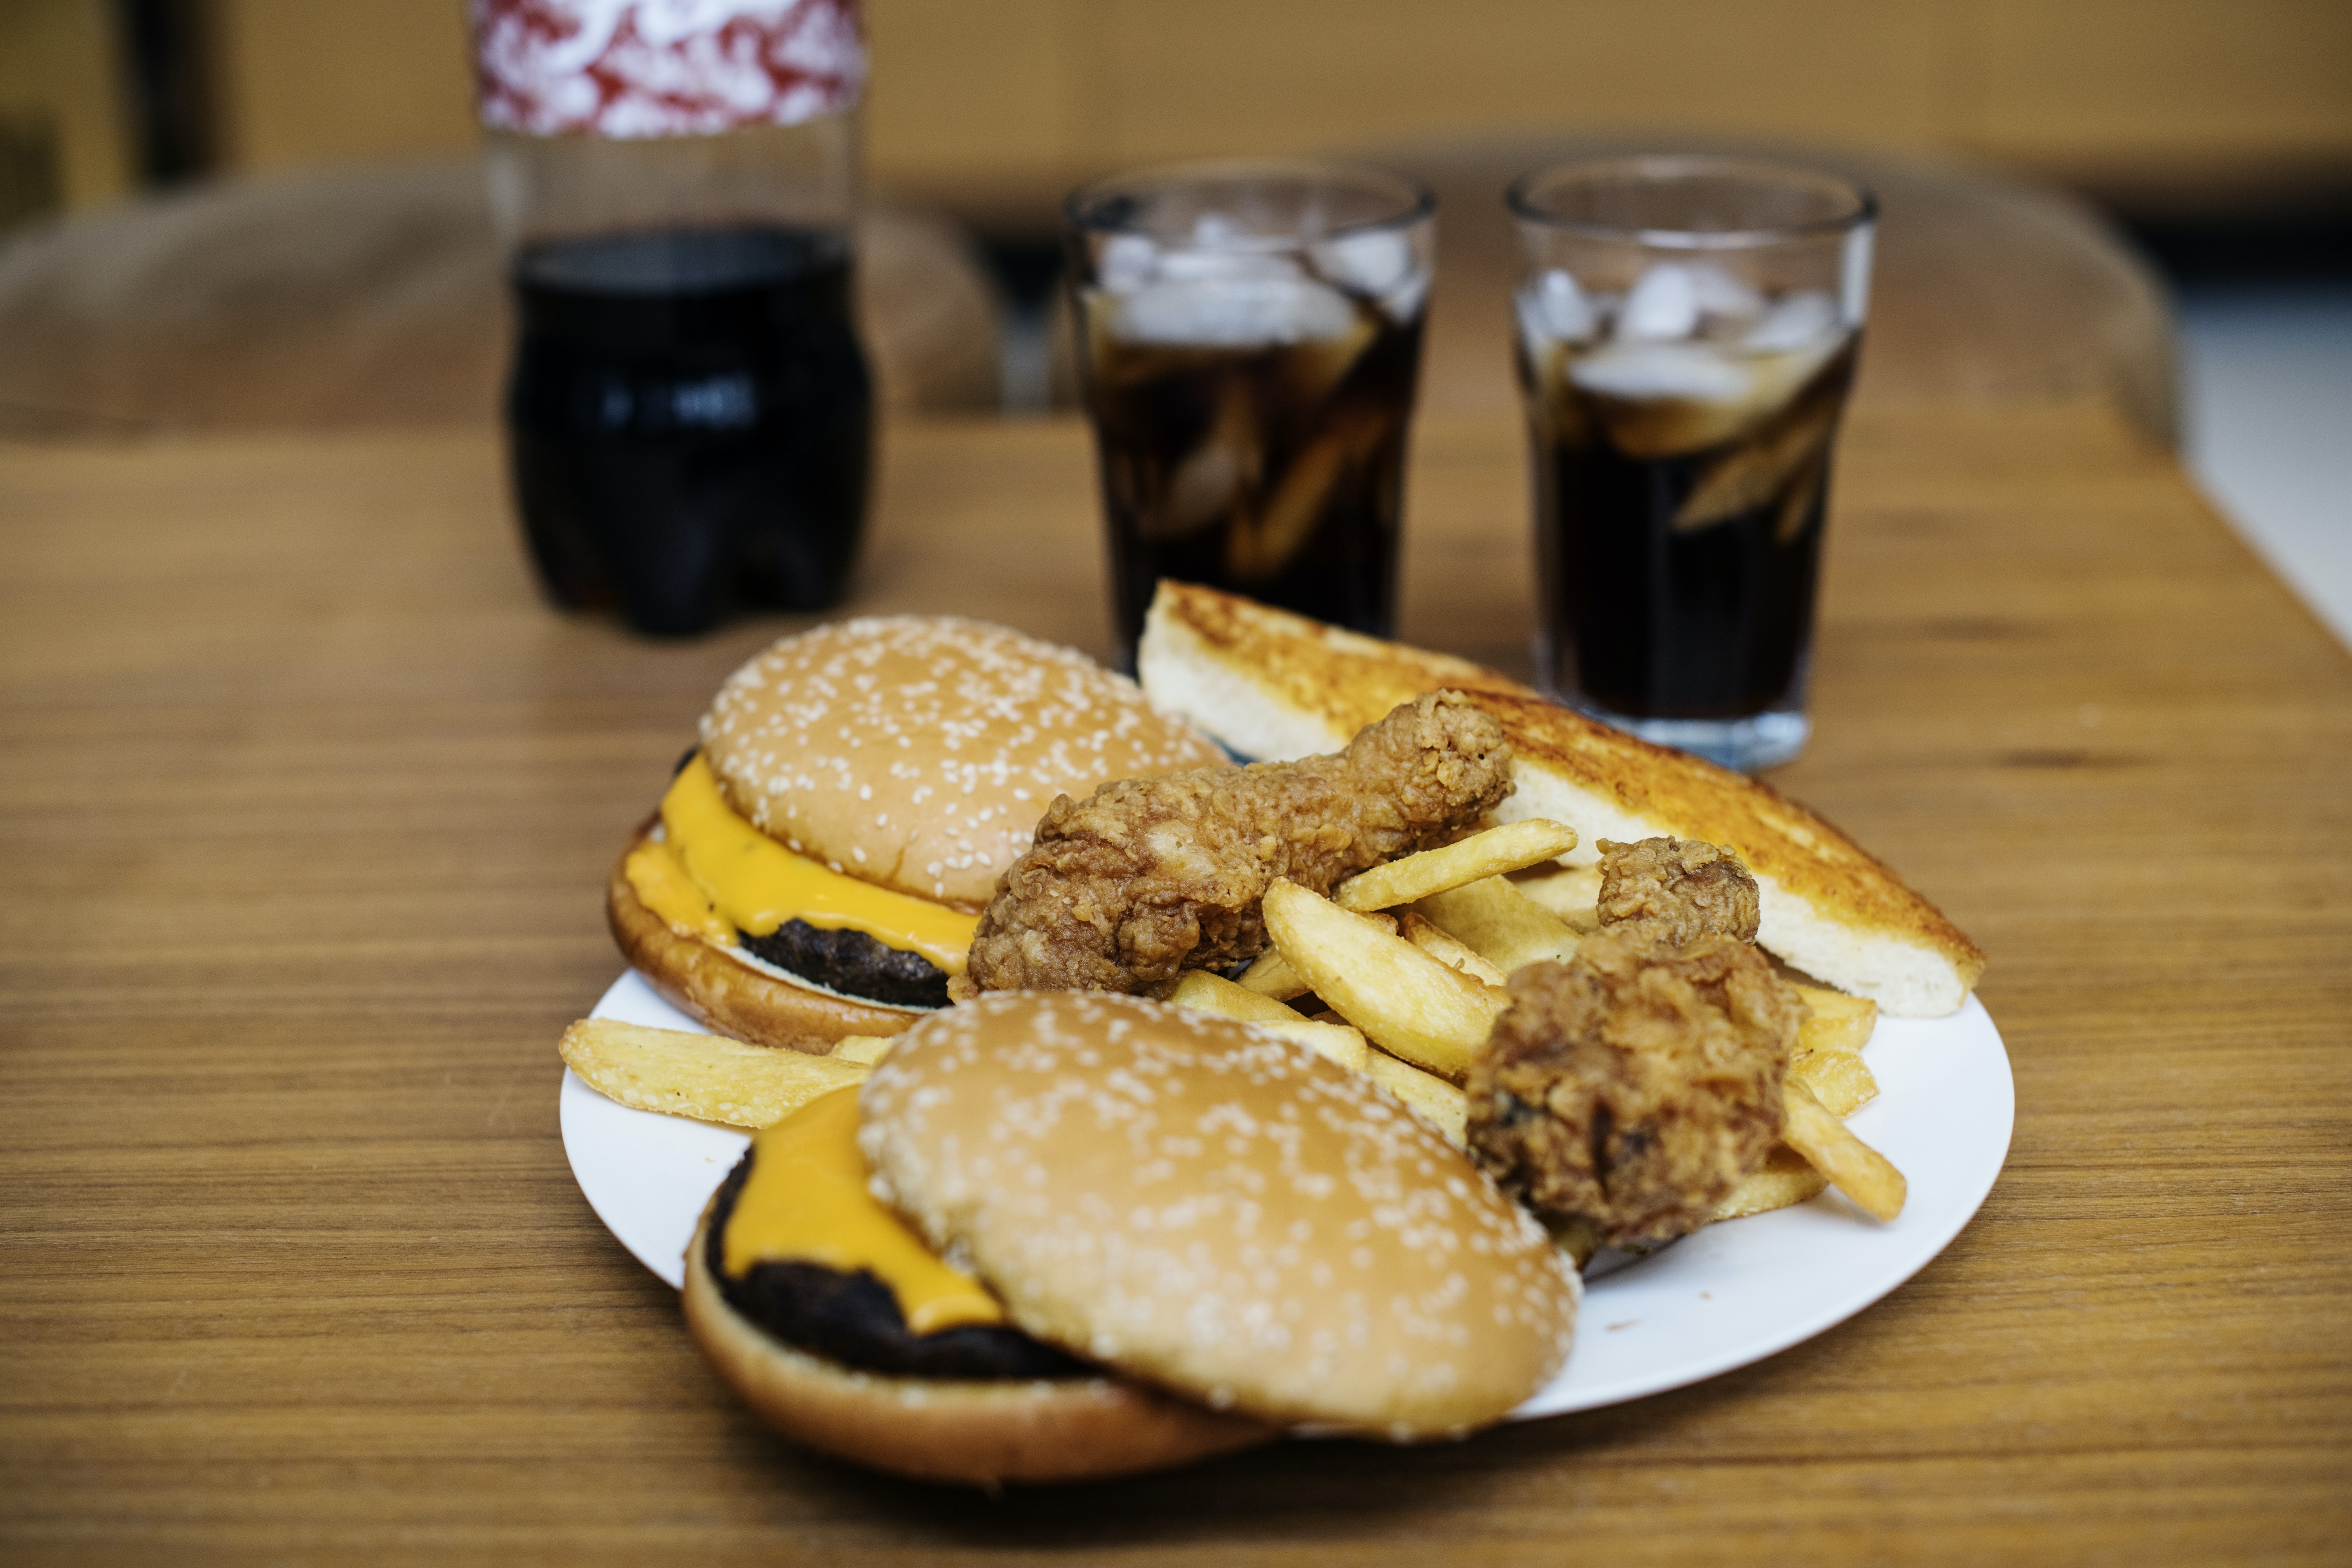 hamburger and chicken on white ceramic plate on brown wooden surface